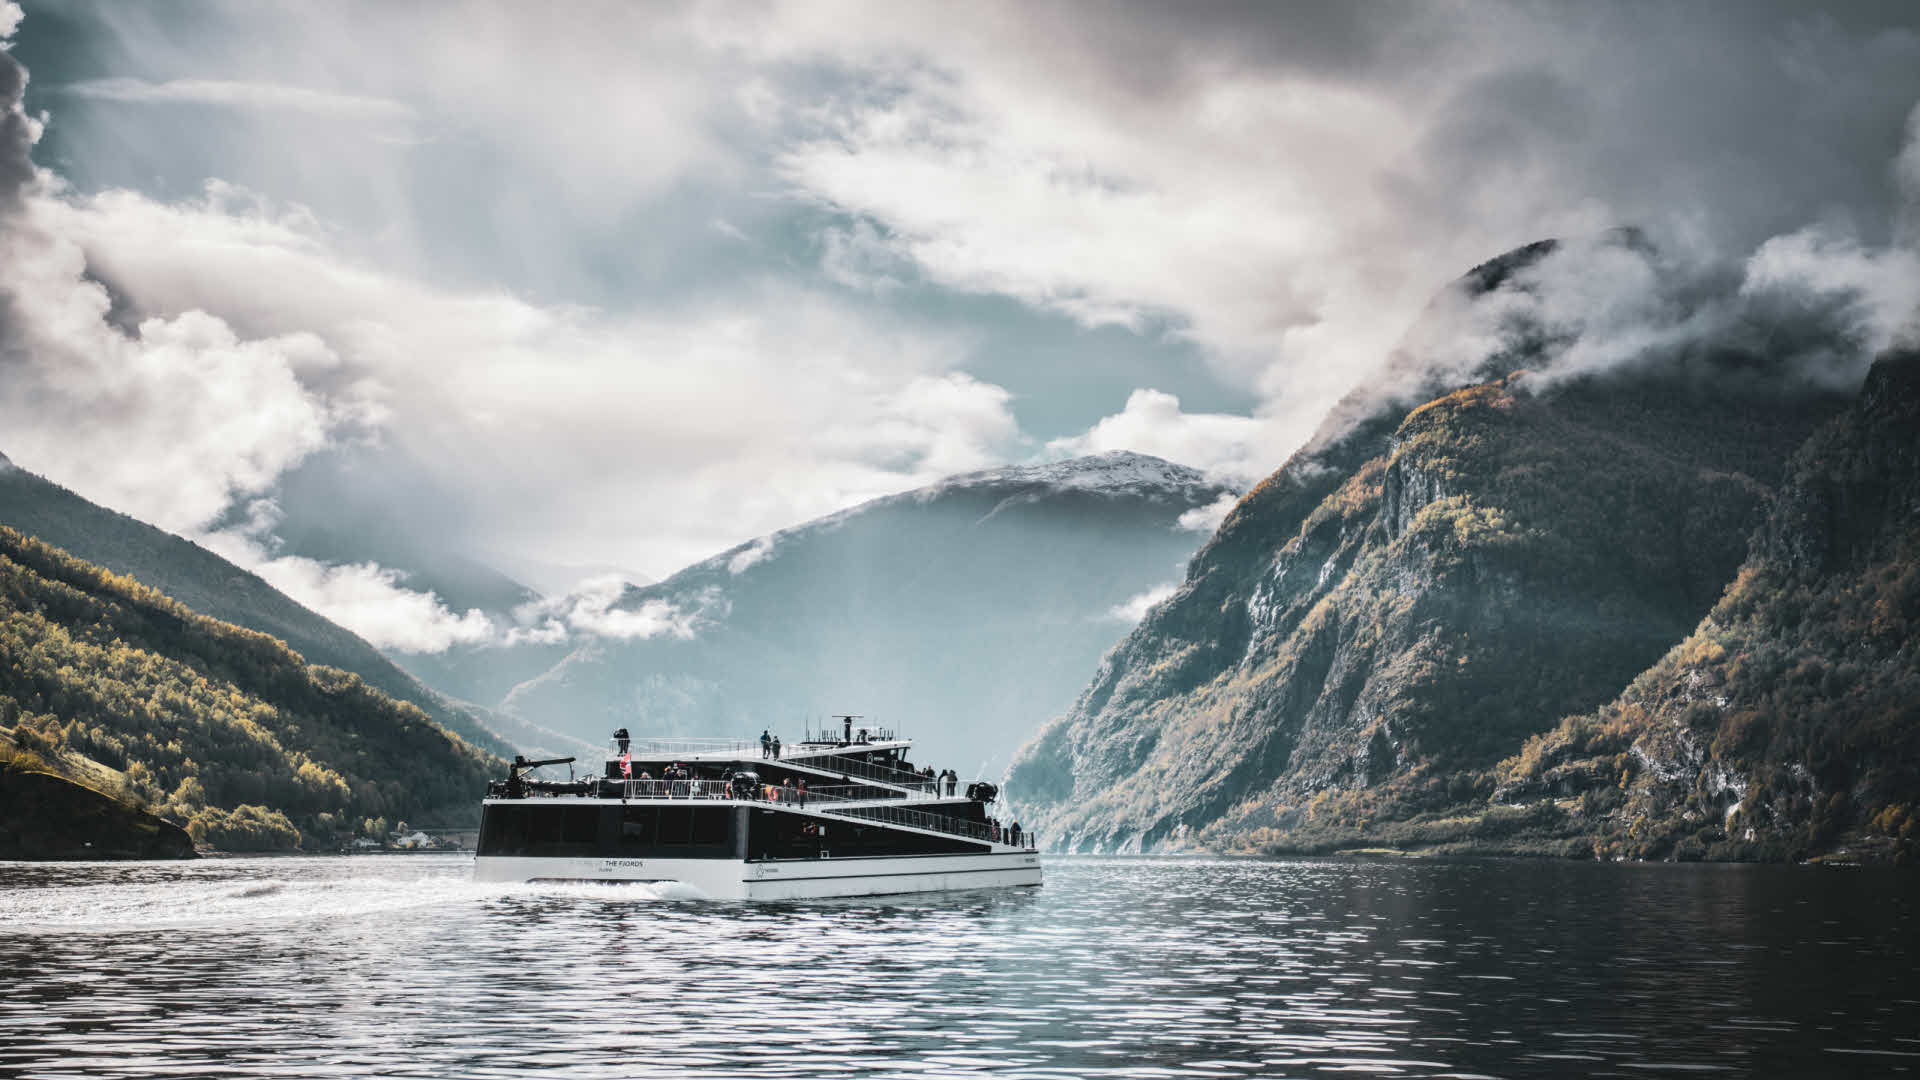 Future of The Fjords sailing on the Aurlandsfjord in cloudy weather